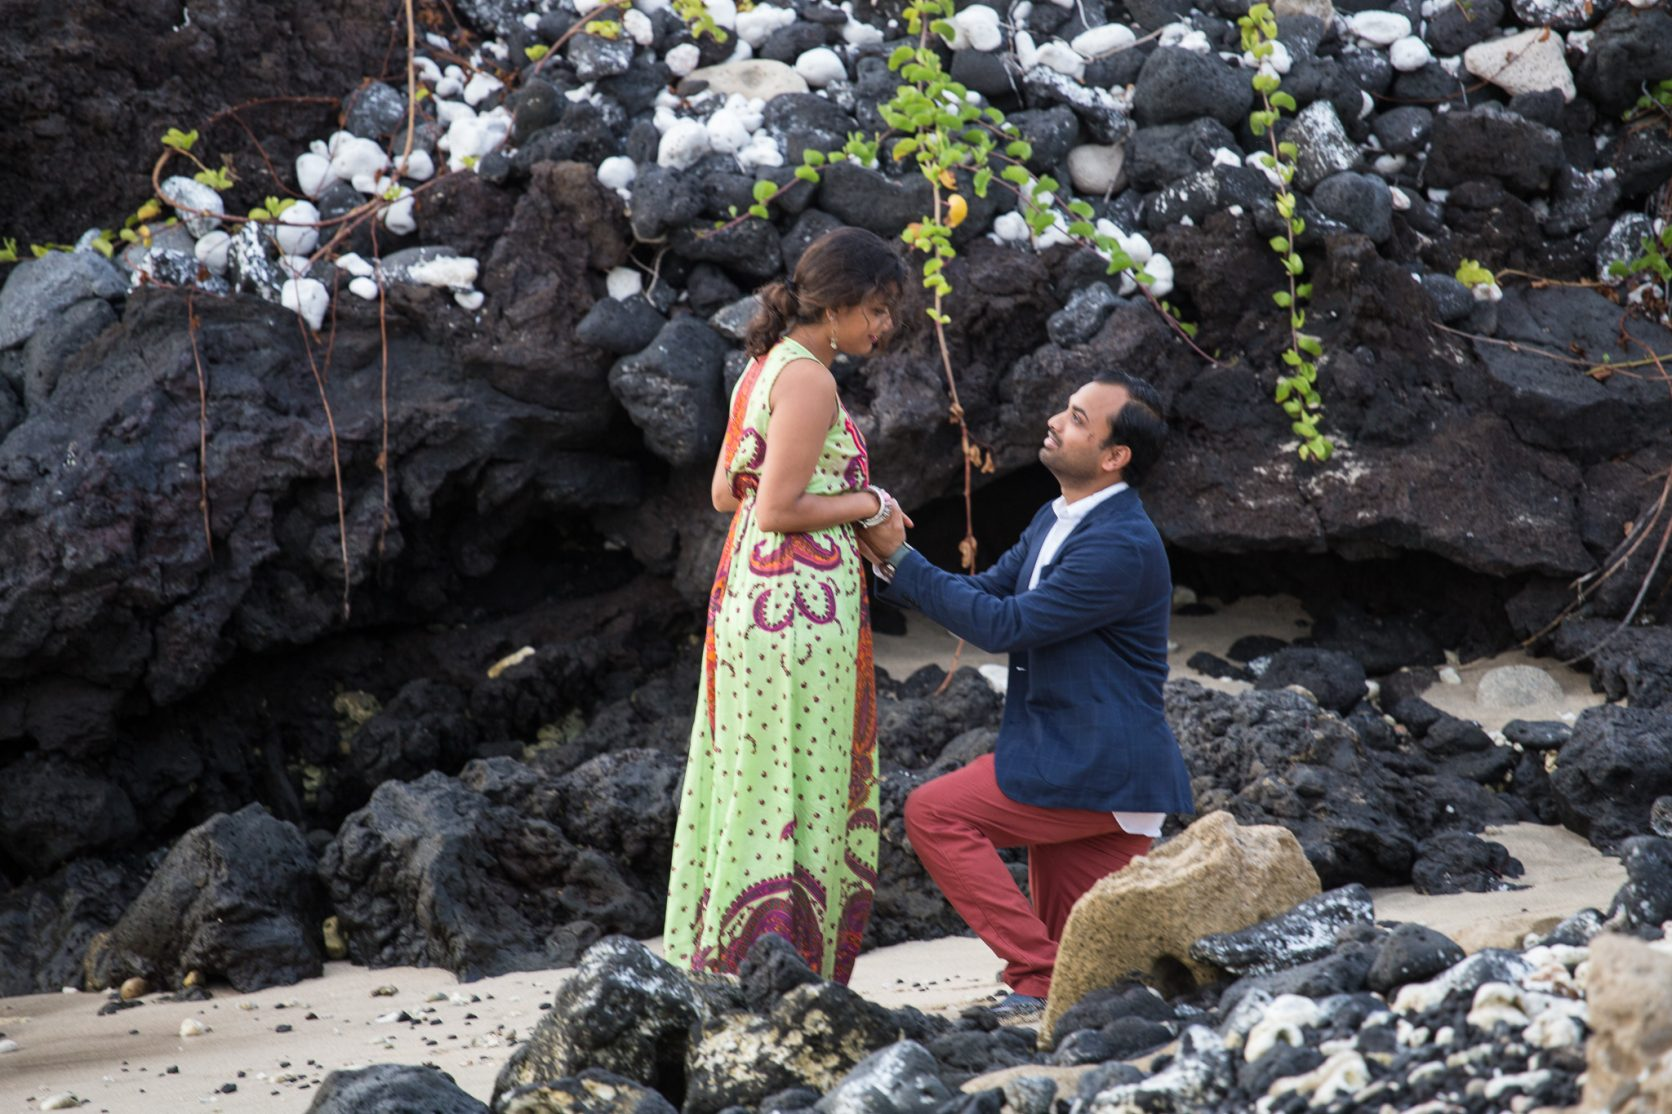 kukio beach four seasons surprise proposal hualalai kailua kona hawaii big island photographer